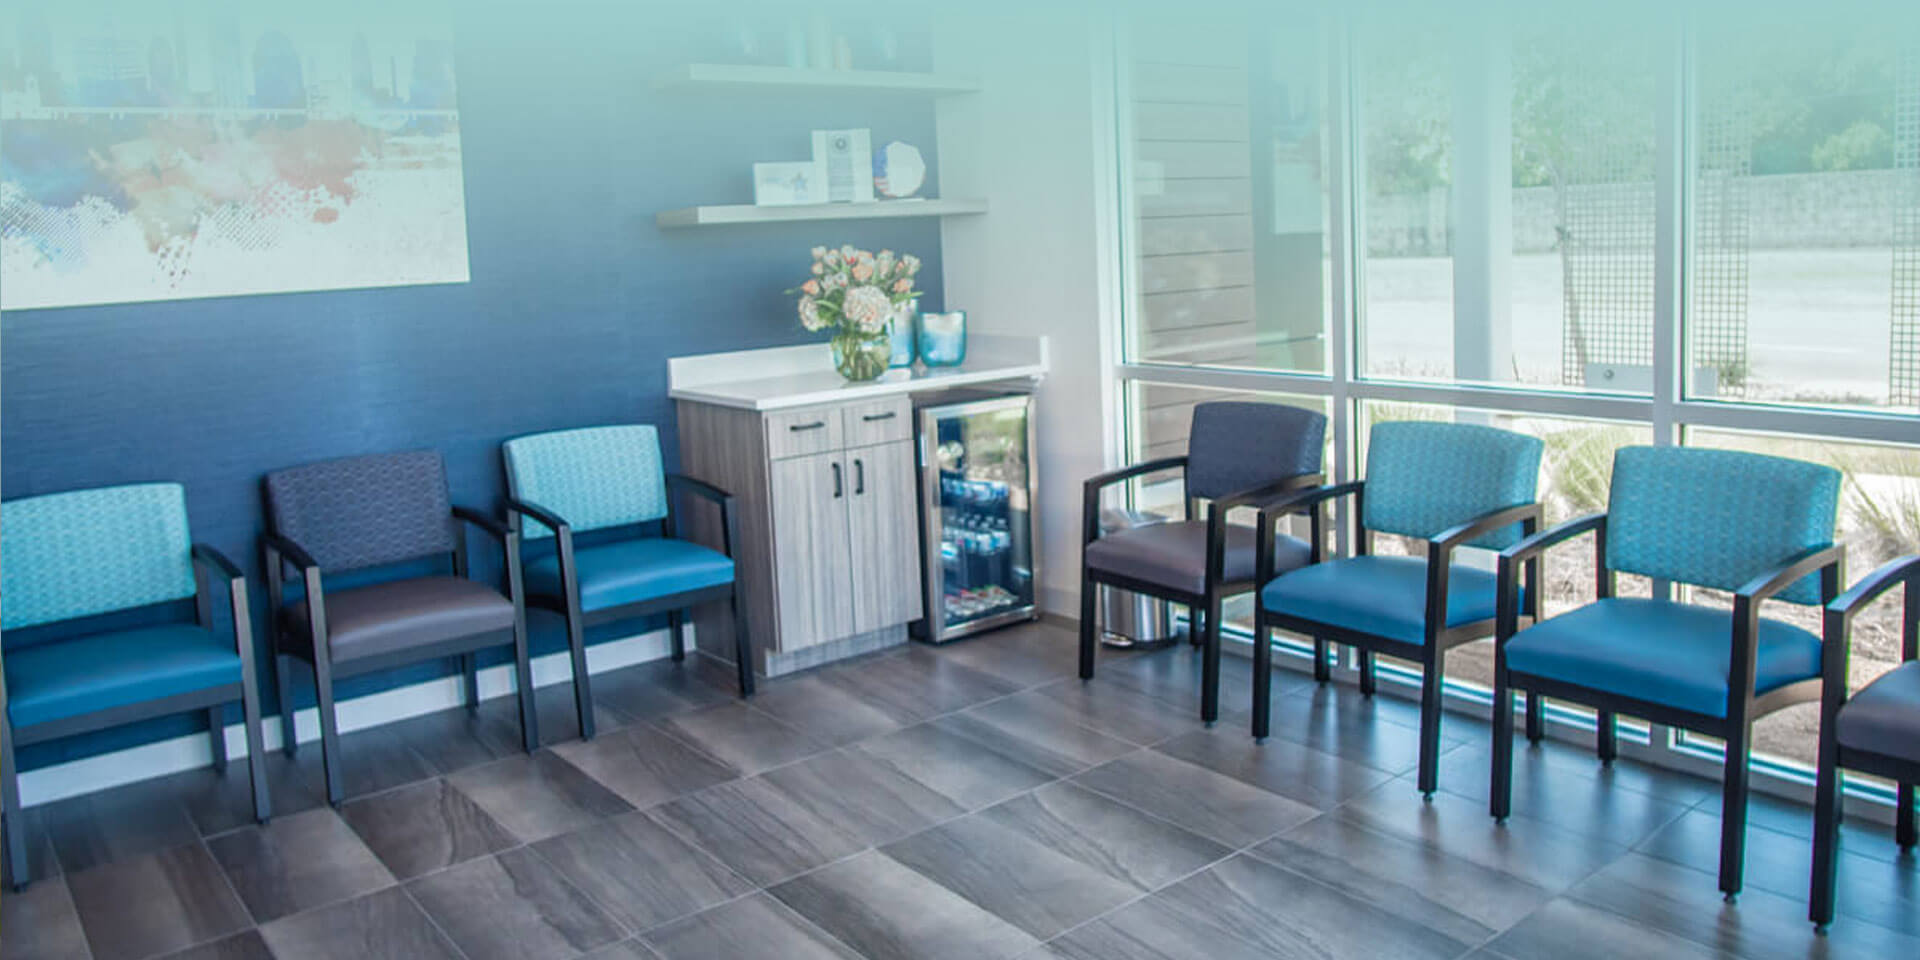 Interior office view at Cosmetic Dentistry of San Antonio